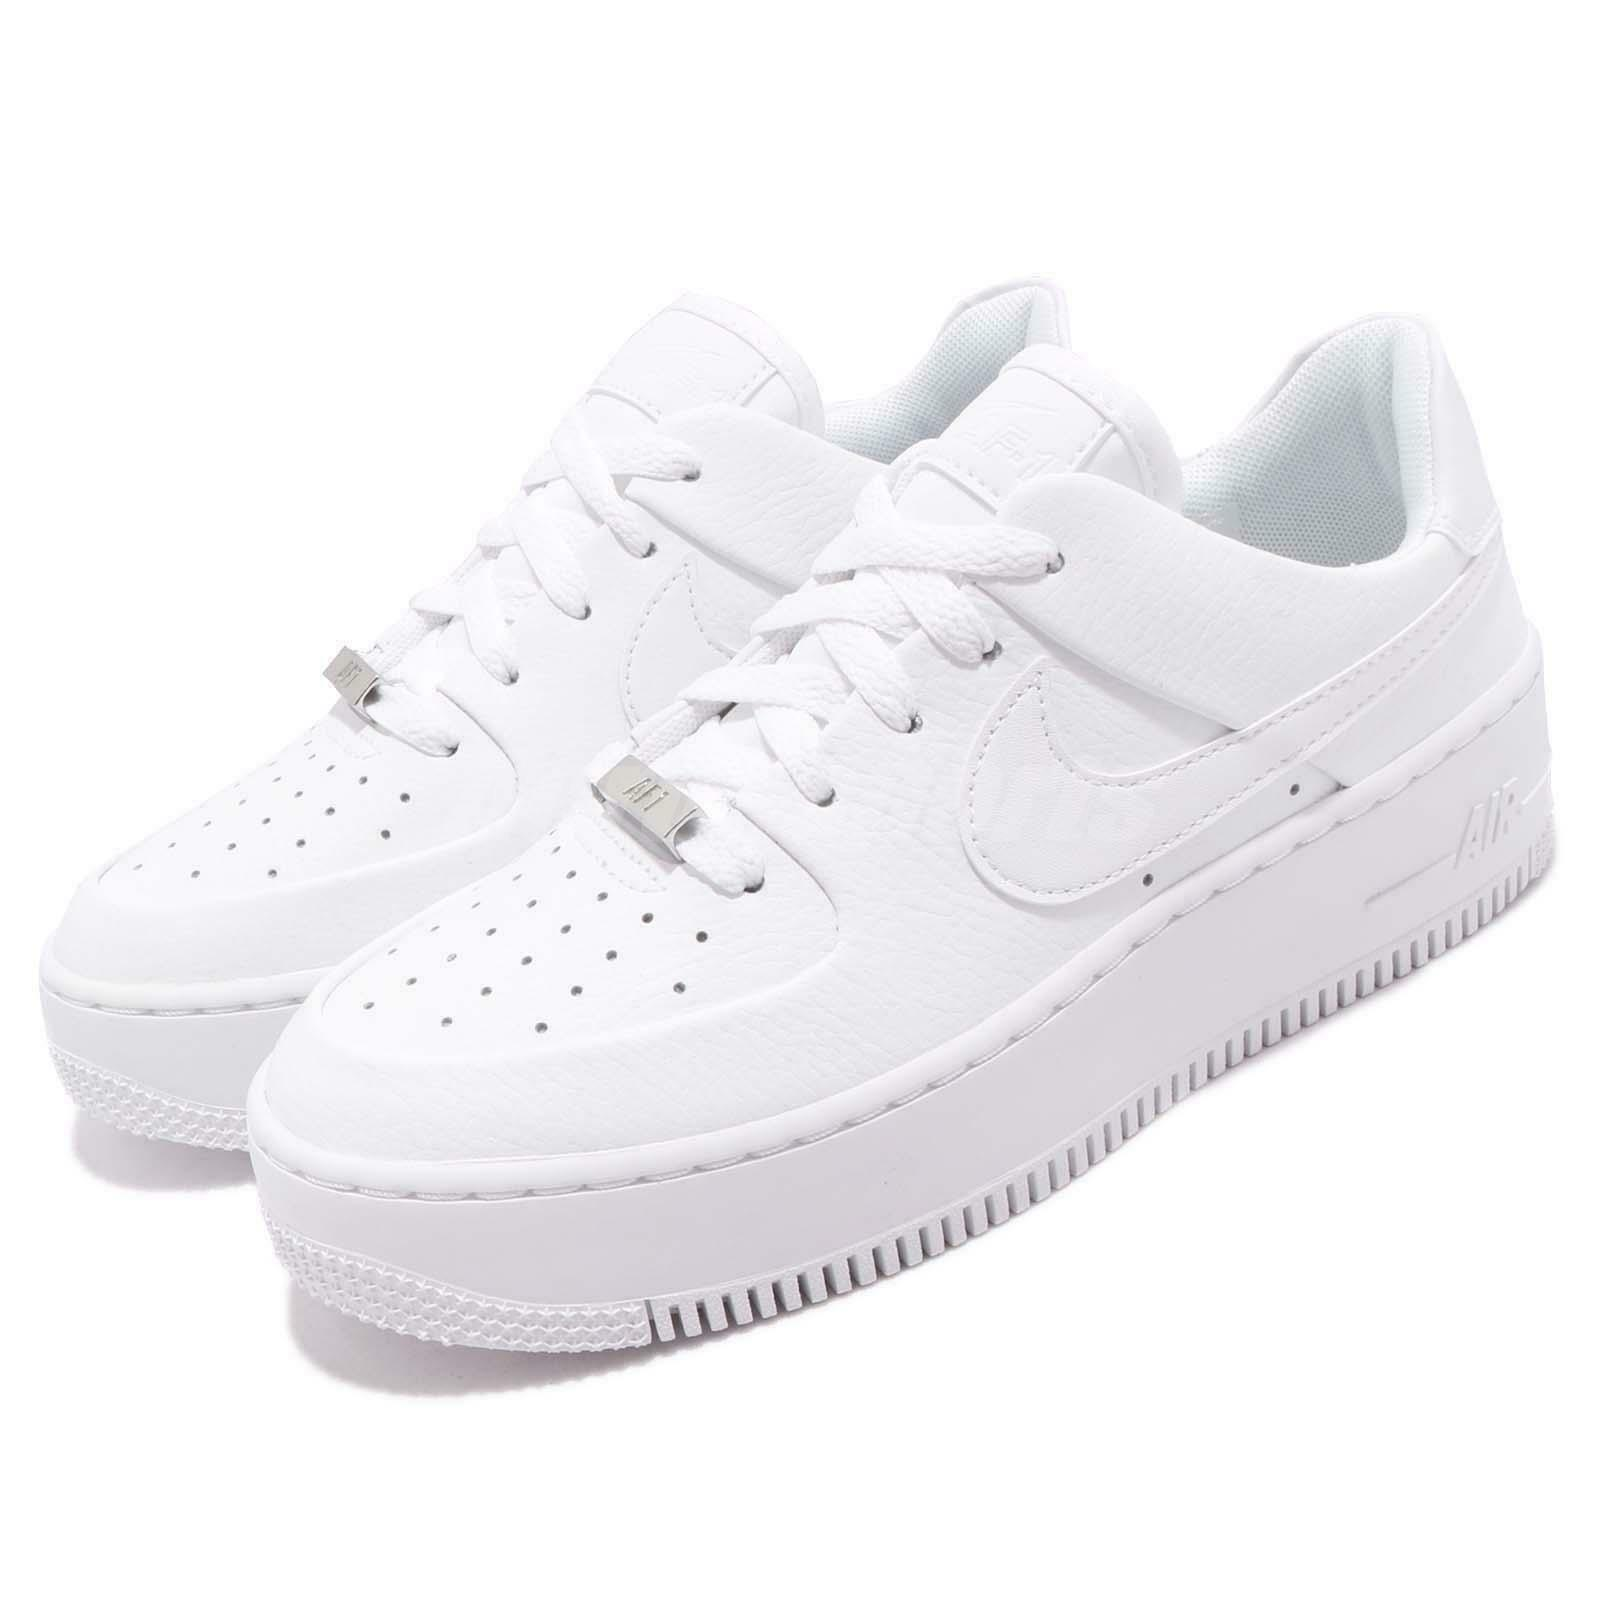 Nike Wmns AF1 Sage Low Triple White Air Force 1 Platform Womens Shoes AR5339 100